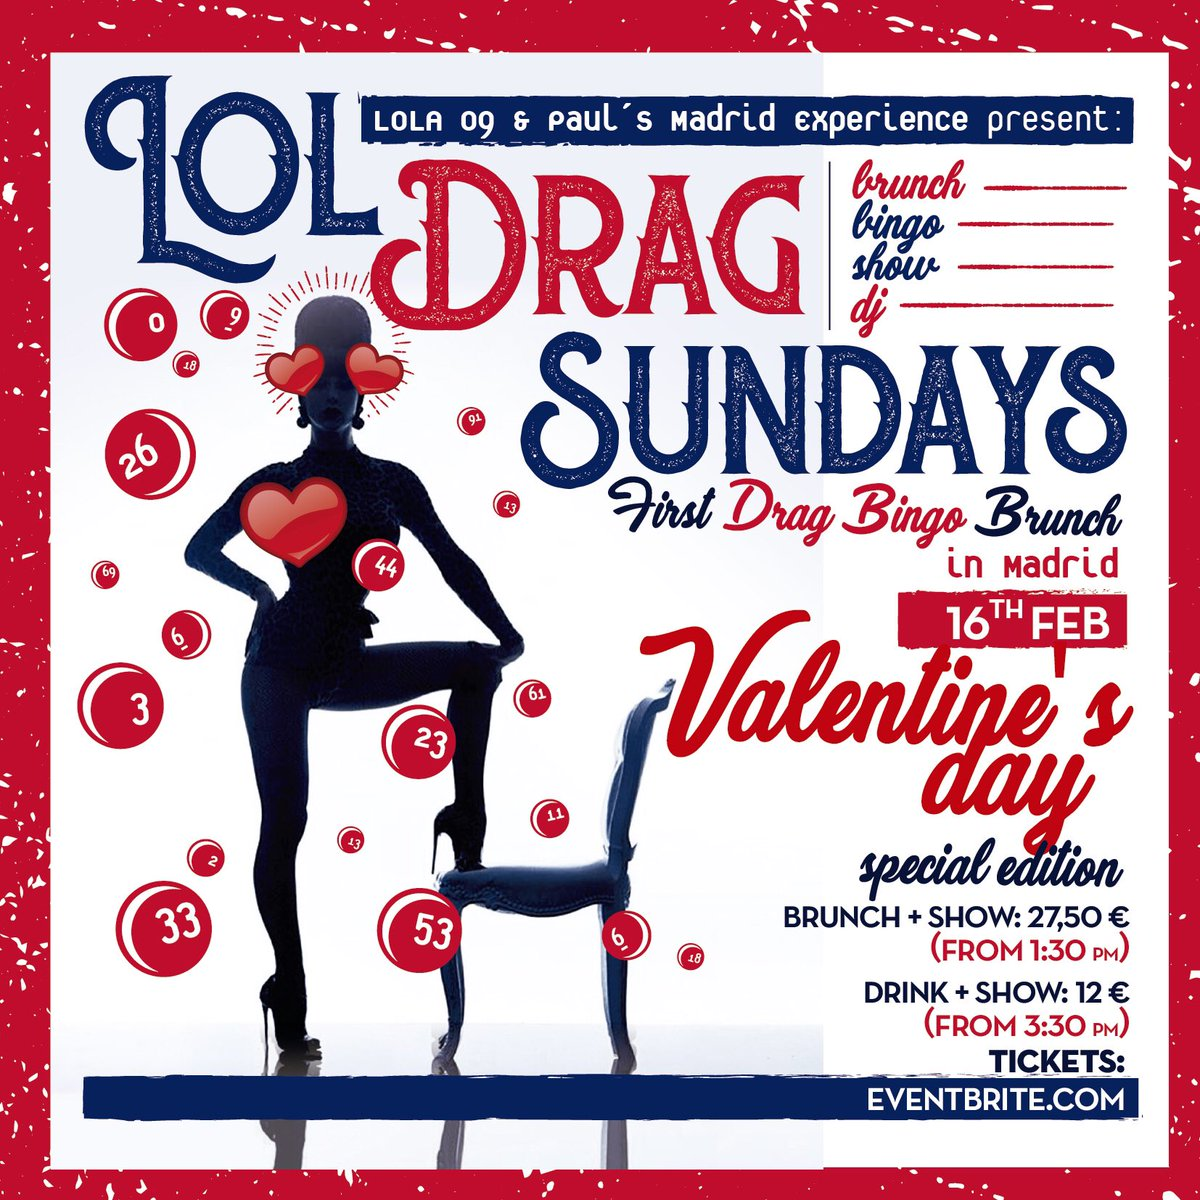 We're back! On Sunday February 16th #Madrid 's only Drag Queen Bingo Brunch brings you a Valentine Special @Lola09Madrid . With all your favorite Queens , including the fabulous @VaniaVainilla1 .  Tickets now on sale @ Eventbrite. https://t.co/86TYF9SCcL